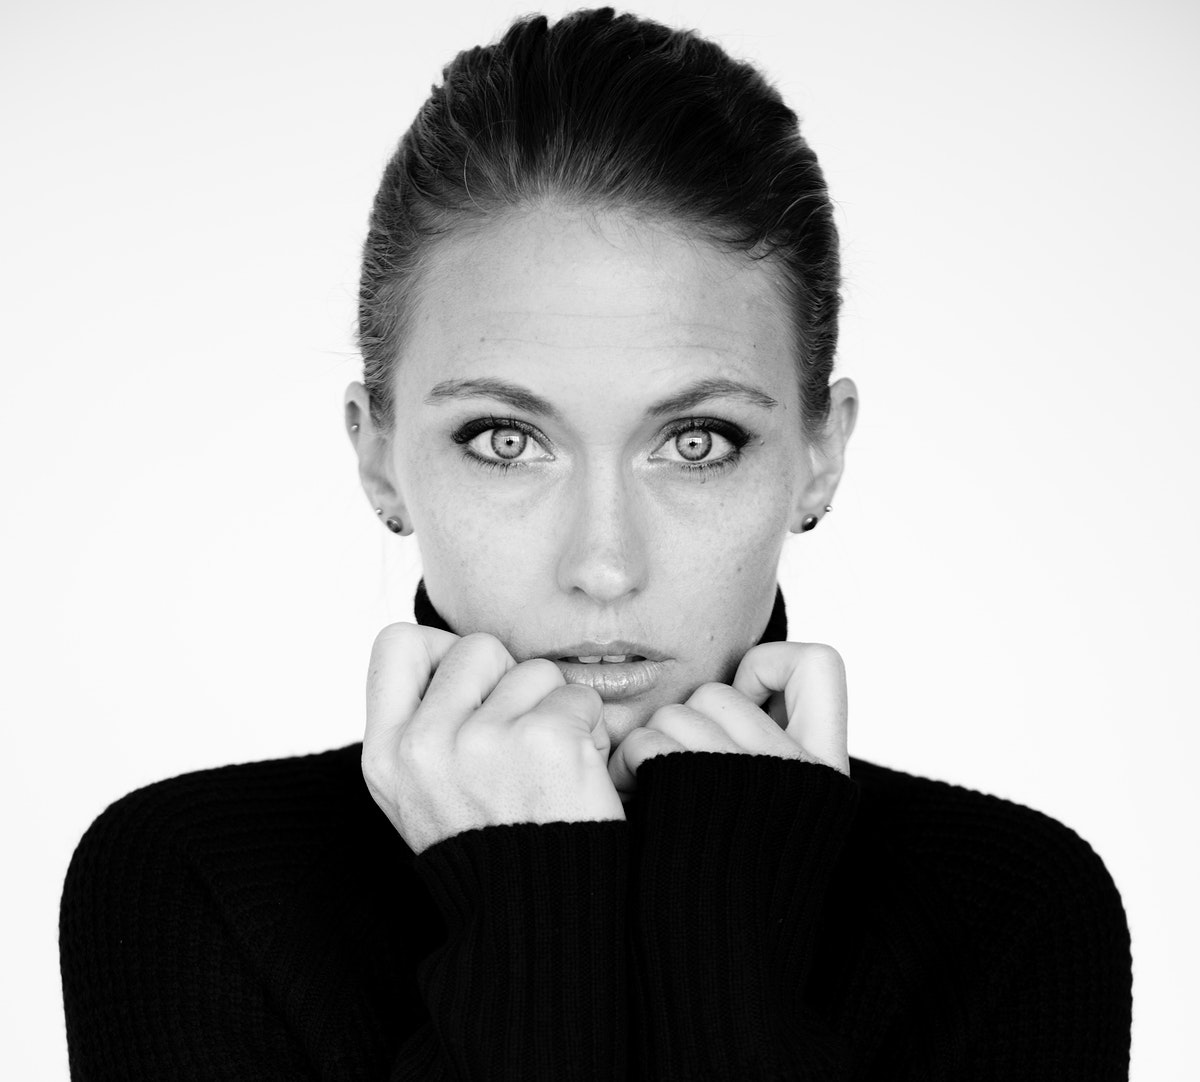 Grayscale of woman headshot serene face expression portrait